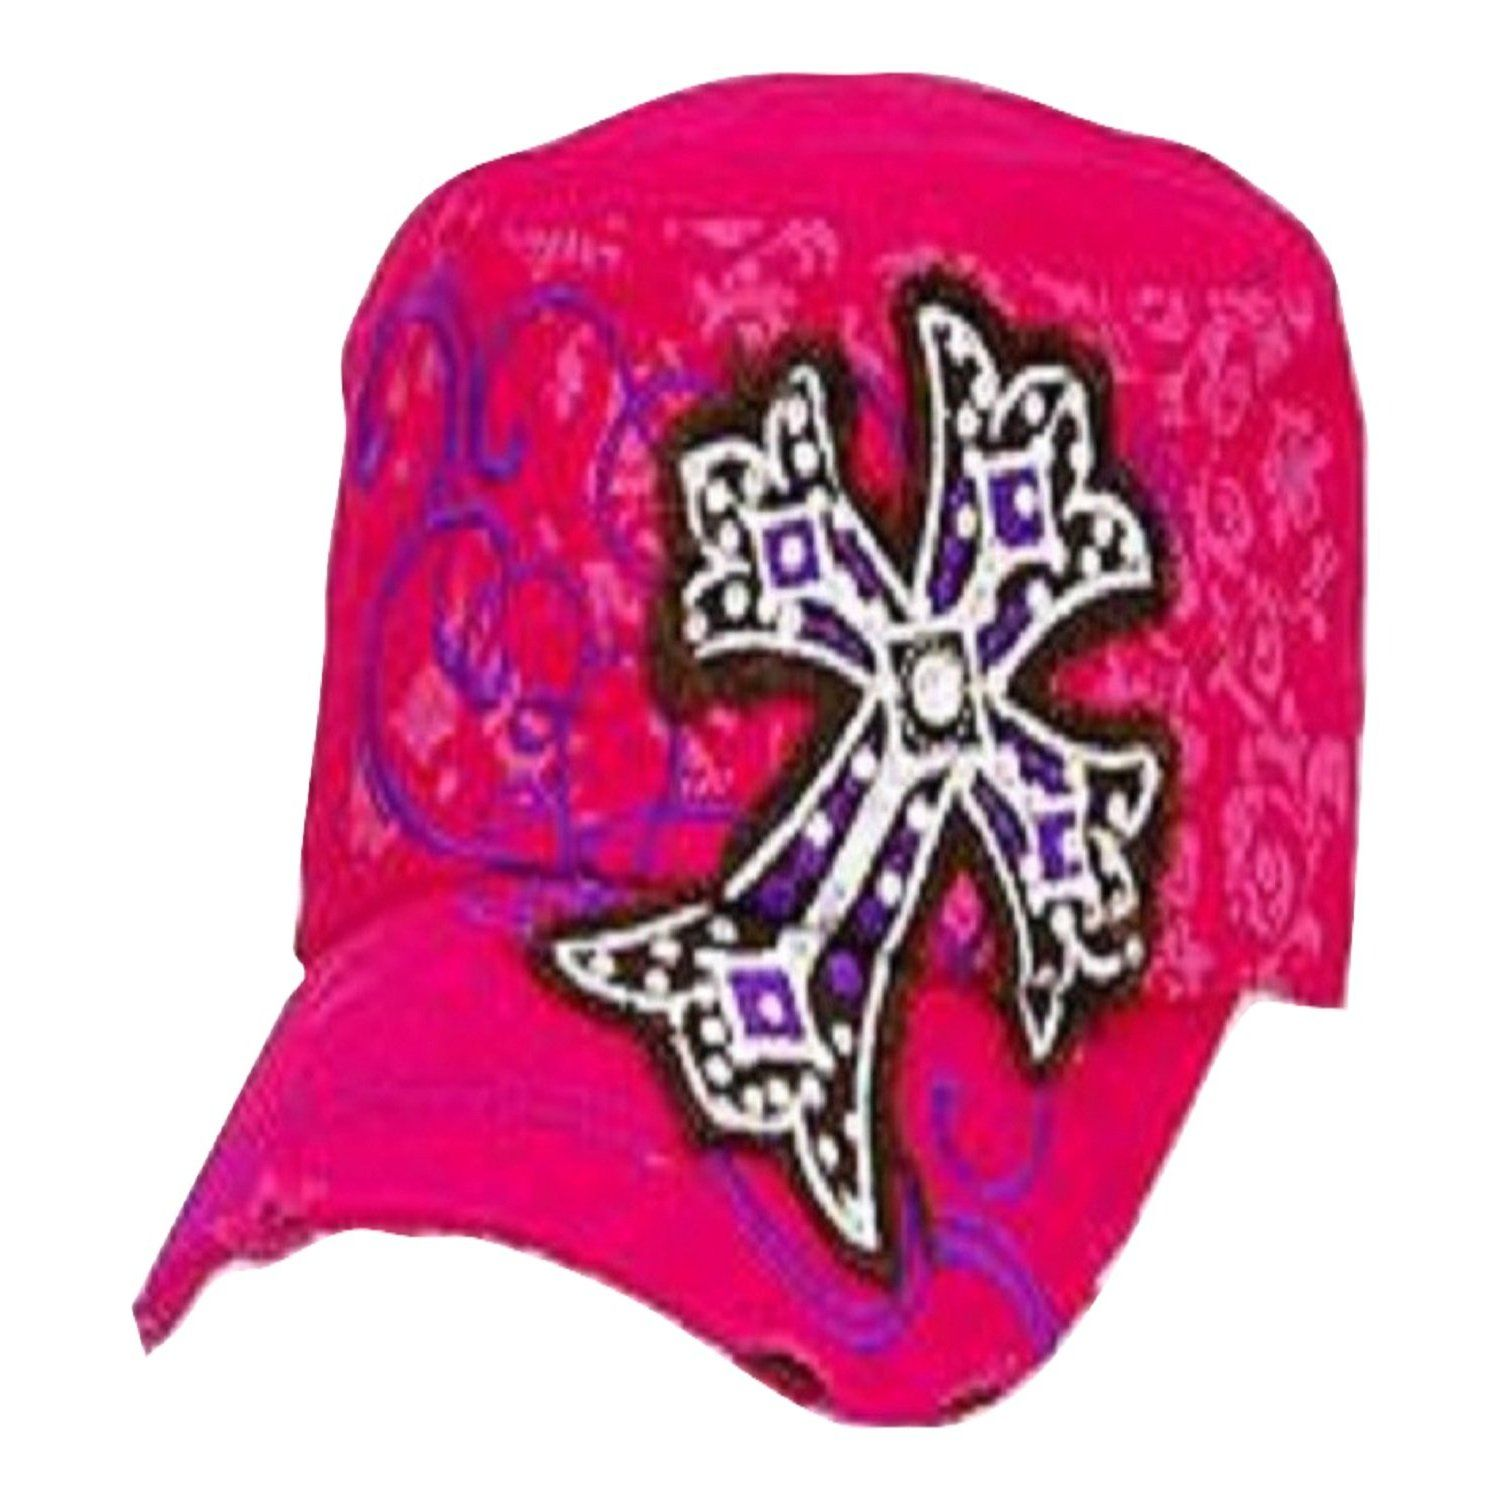 Leader Hot Pink Patch Cross Vintage Hat with Rhinestones   Trendy Hats f84fbb8a539